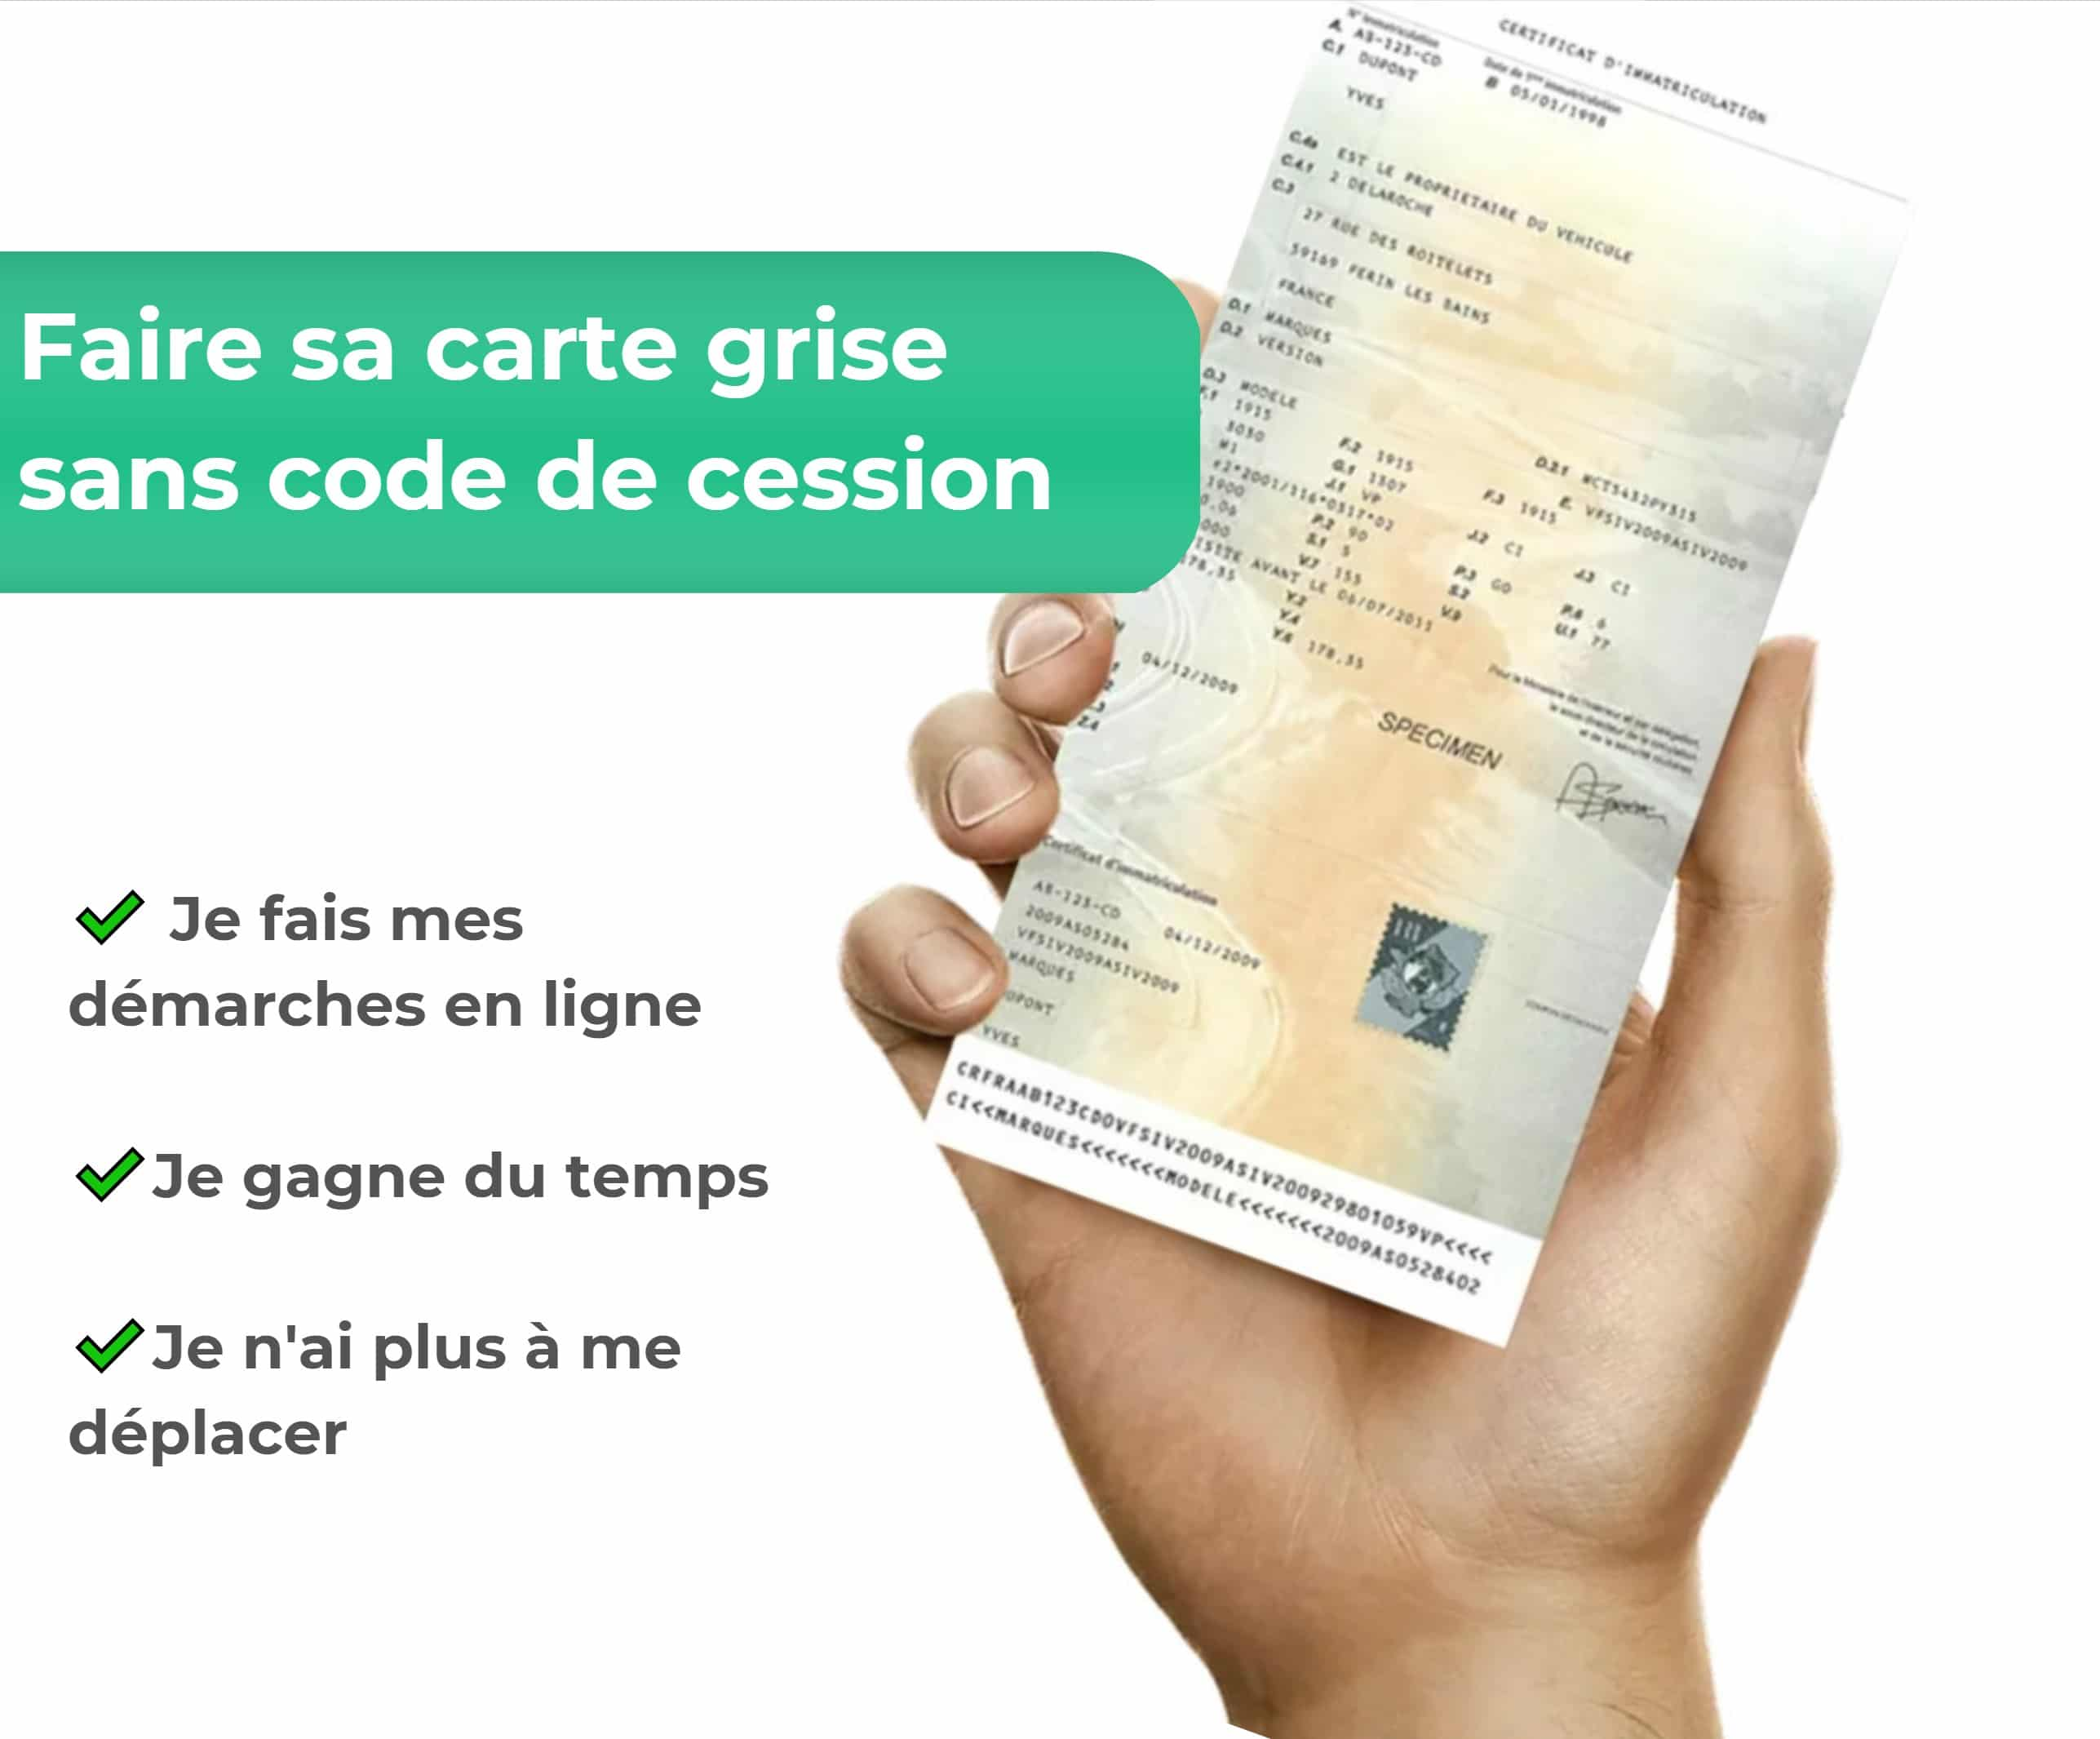 faire carte grise sans code de cession Carte grise sans code de cession ANTS : comment faire ?